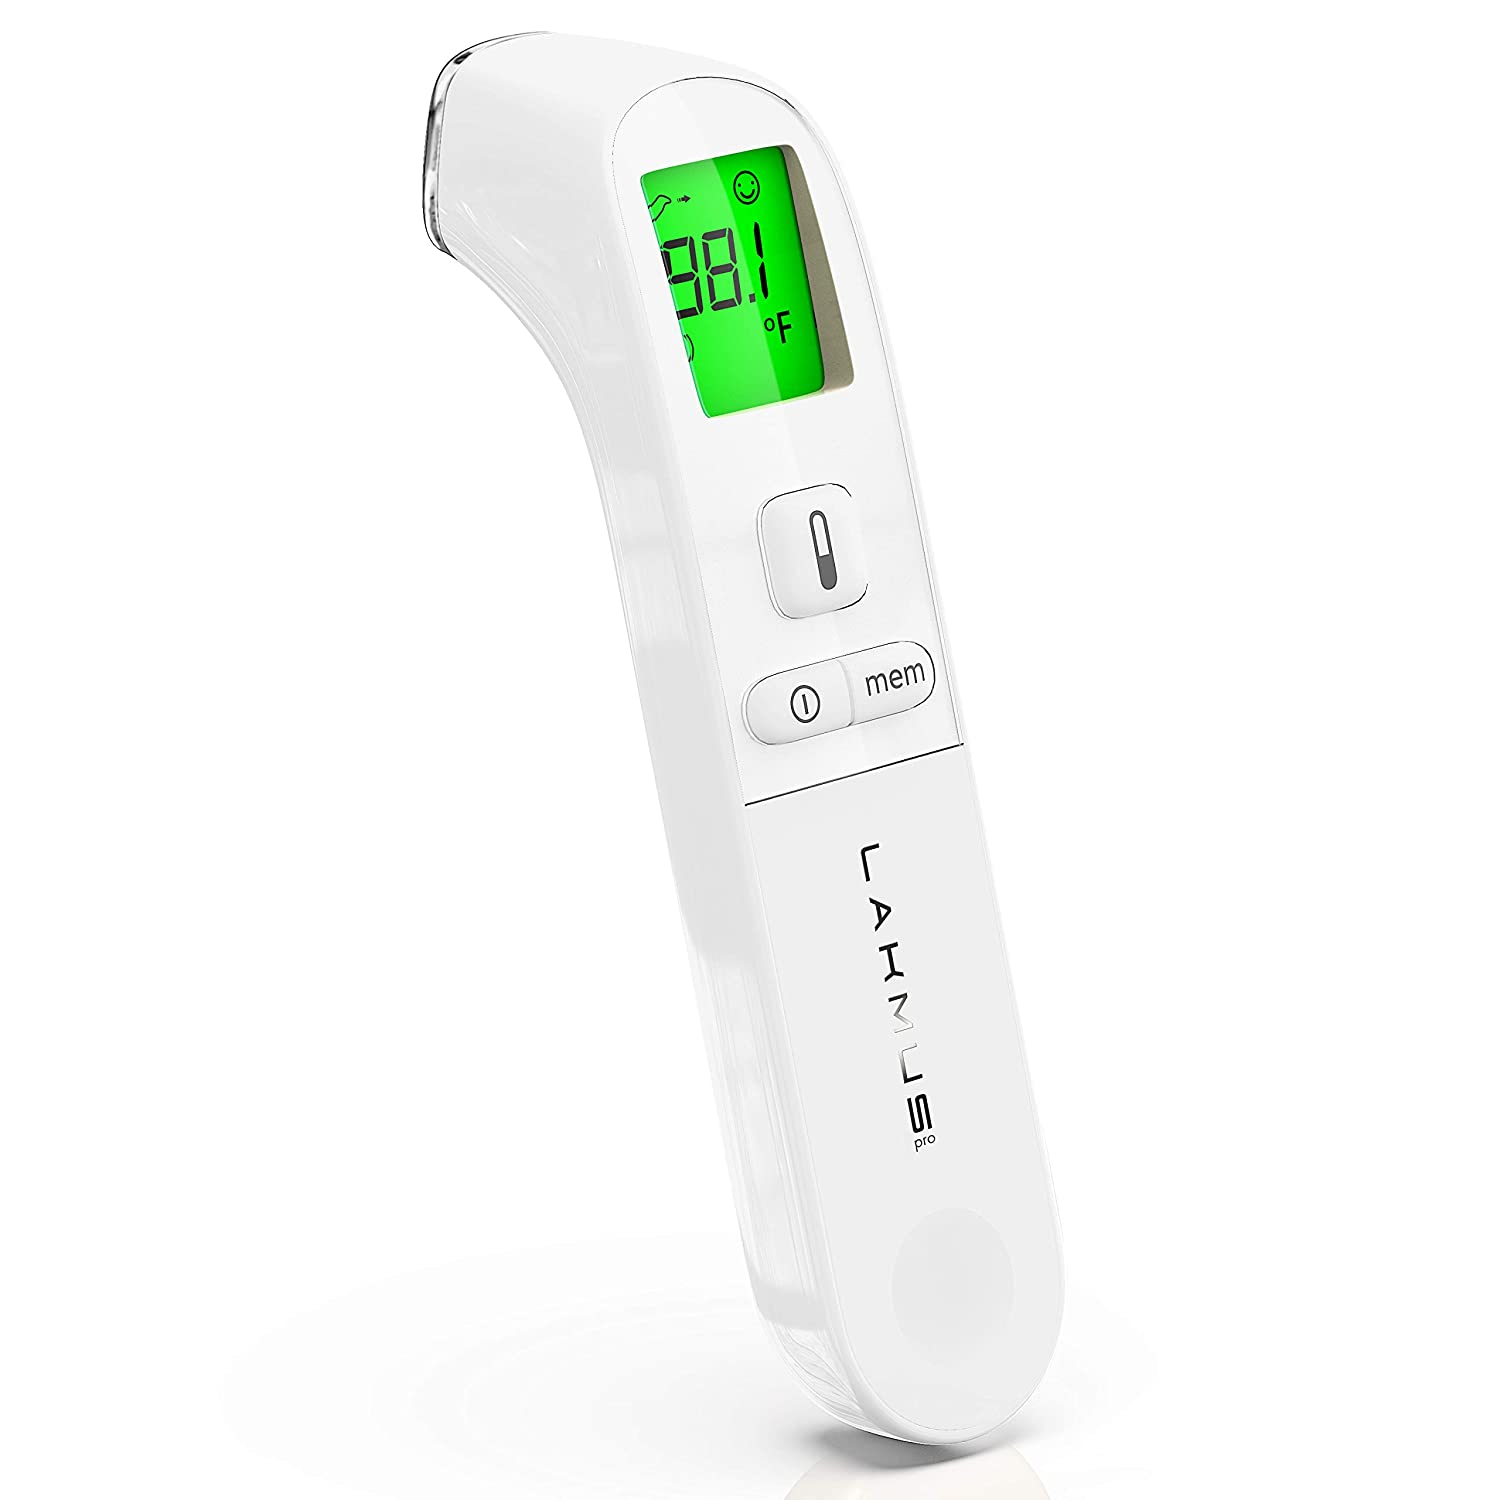 Medical Forehead Thermometer for Fever – Baby Temporal Digital Thermometer – Infrared Forehead Thermometer for Kids and Adults – Portable Thermometer with Case – New Model of Fast Baby Thermometer